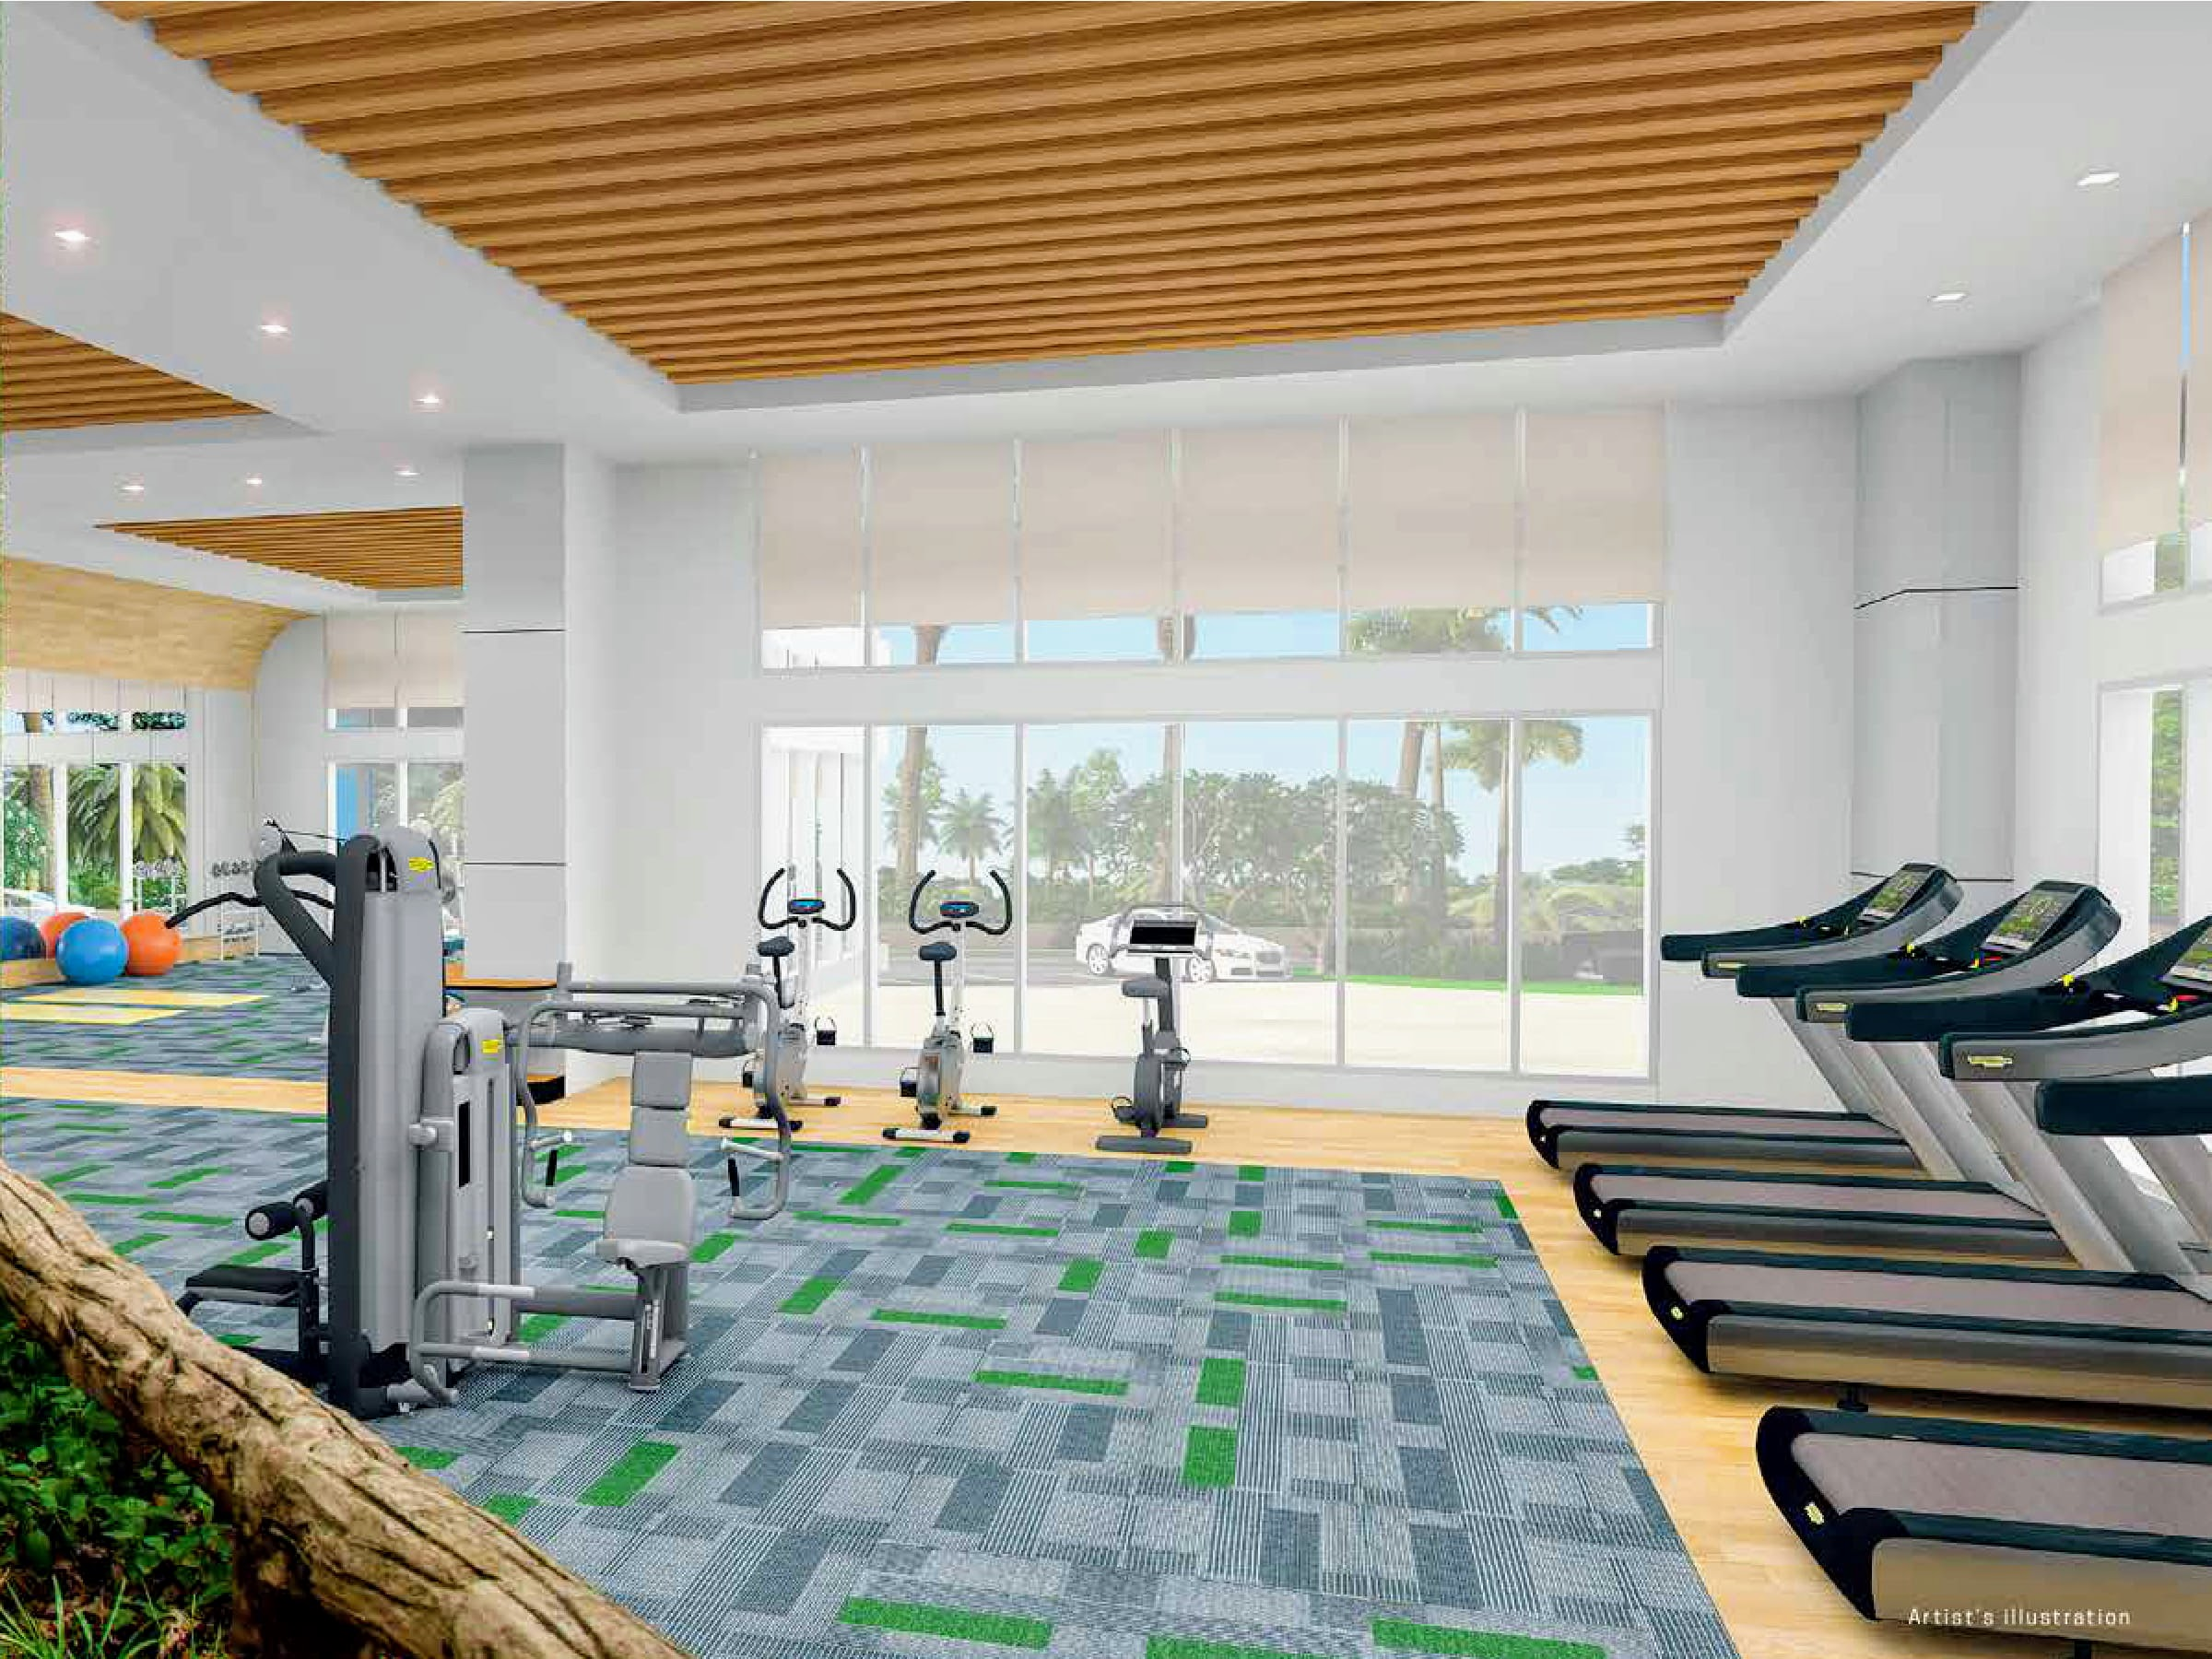 The Arton by Rockwell, Katipunan, Quezon City fitness gym